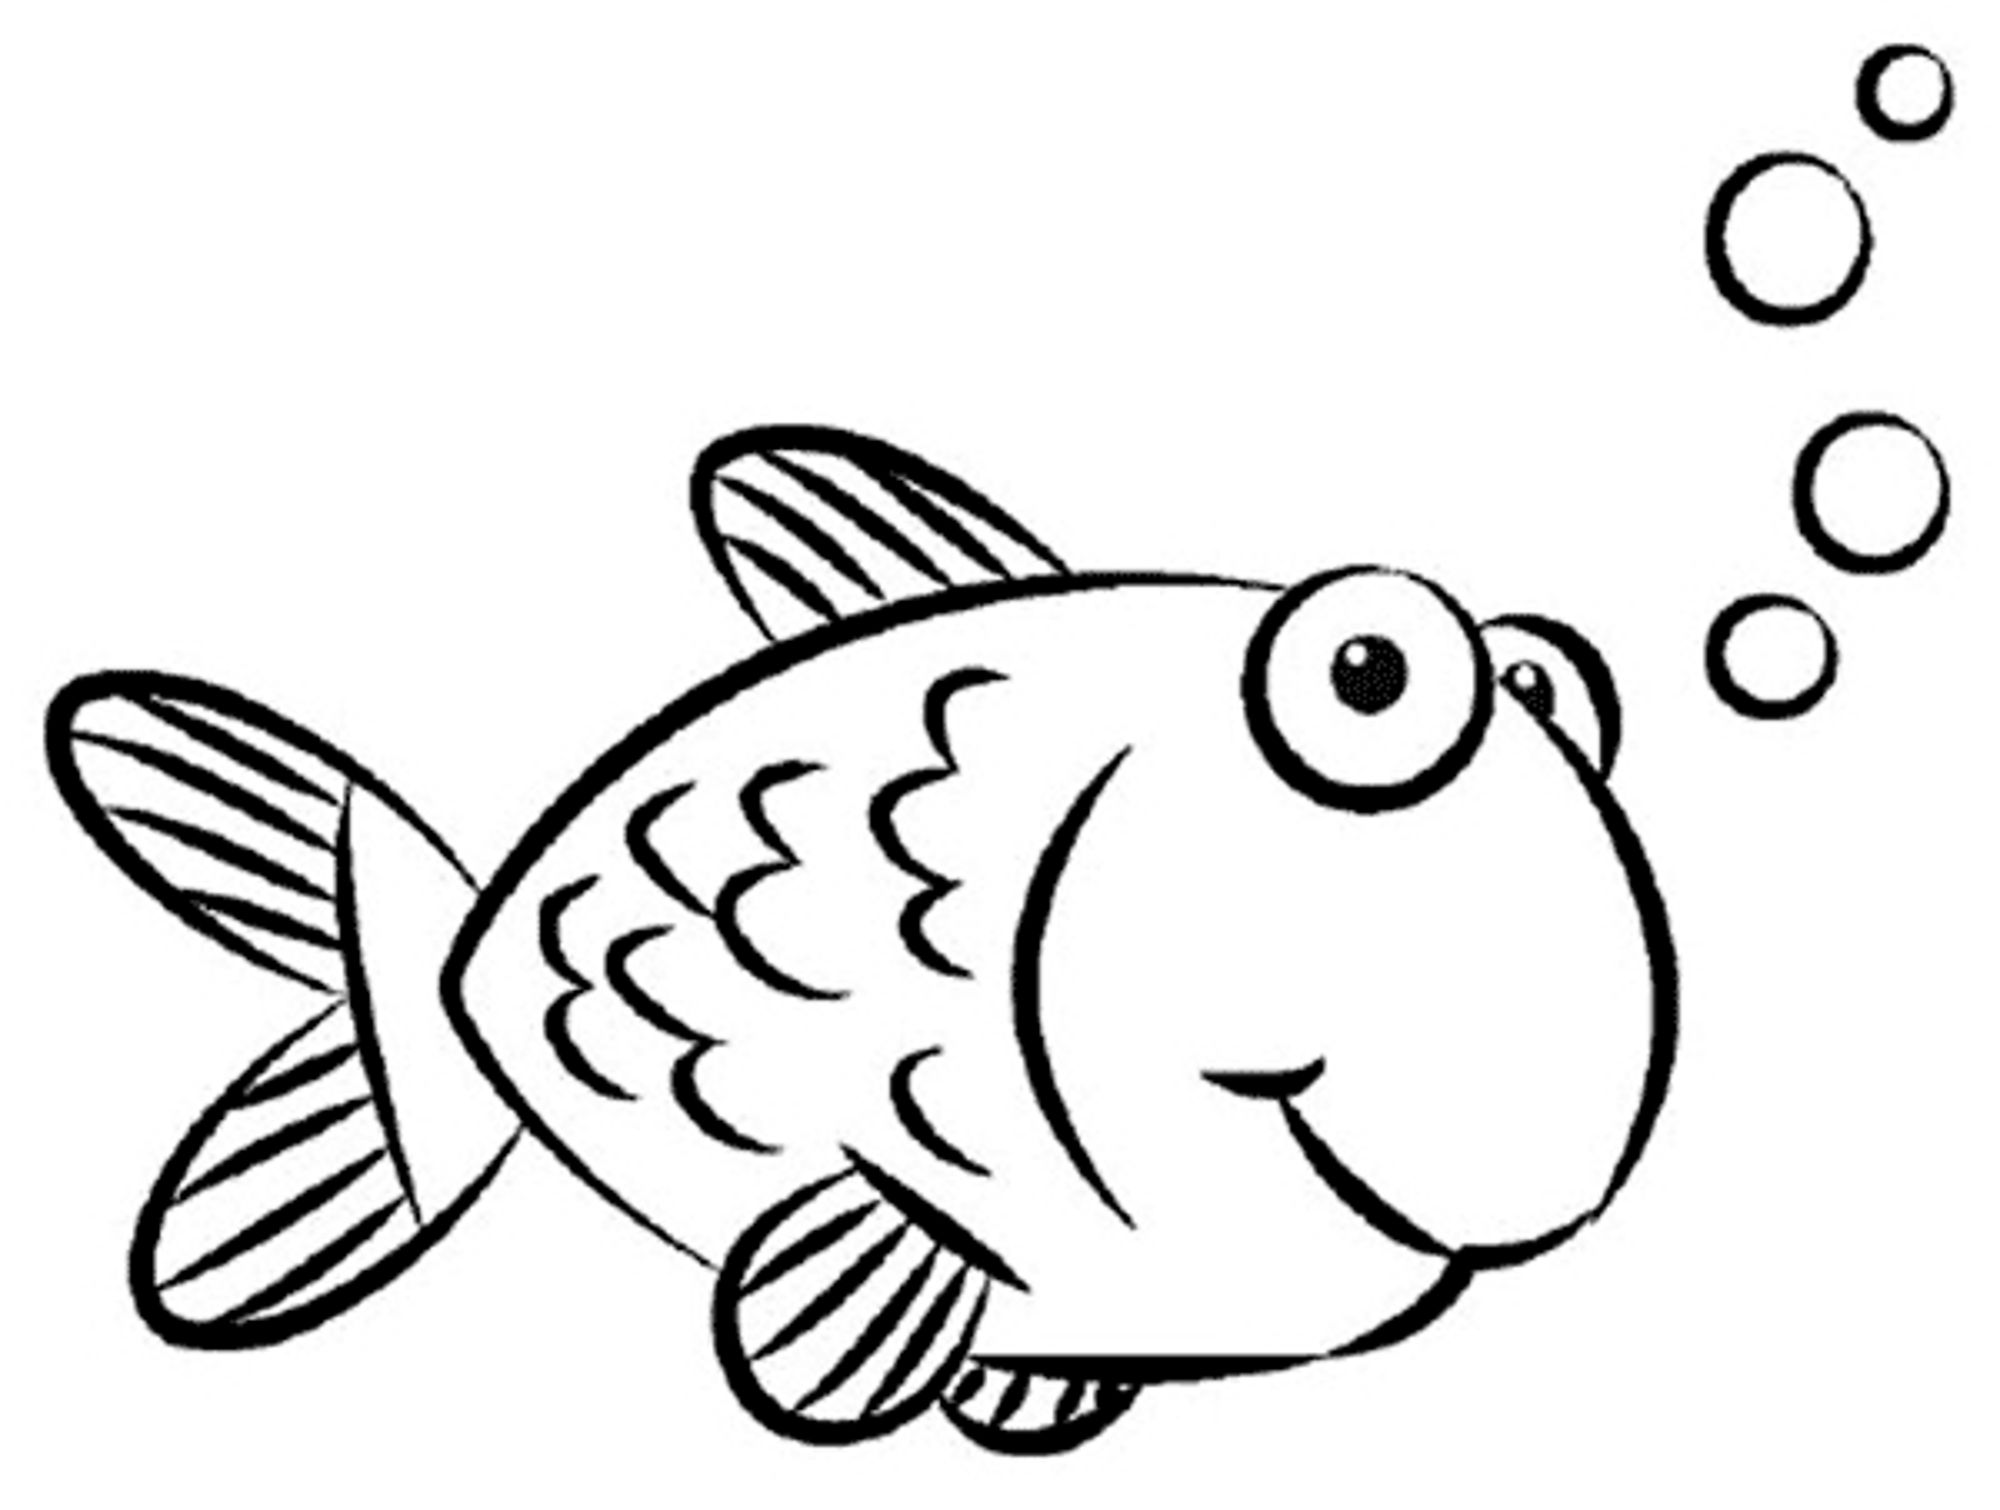 Fish and birds coloring page - a-k-b.info